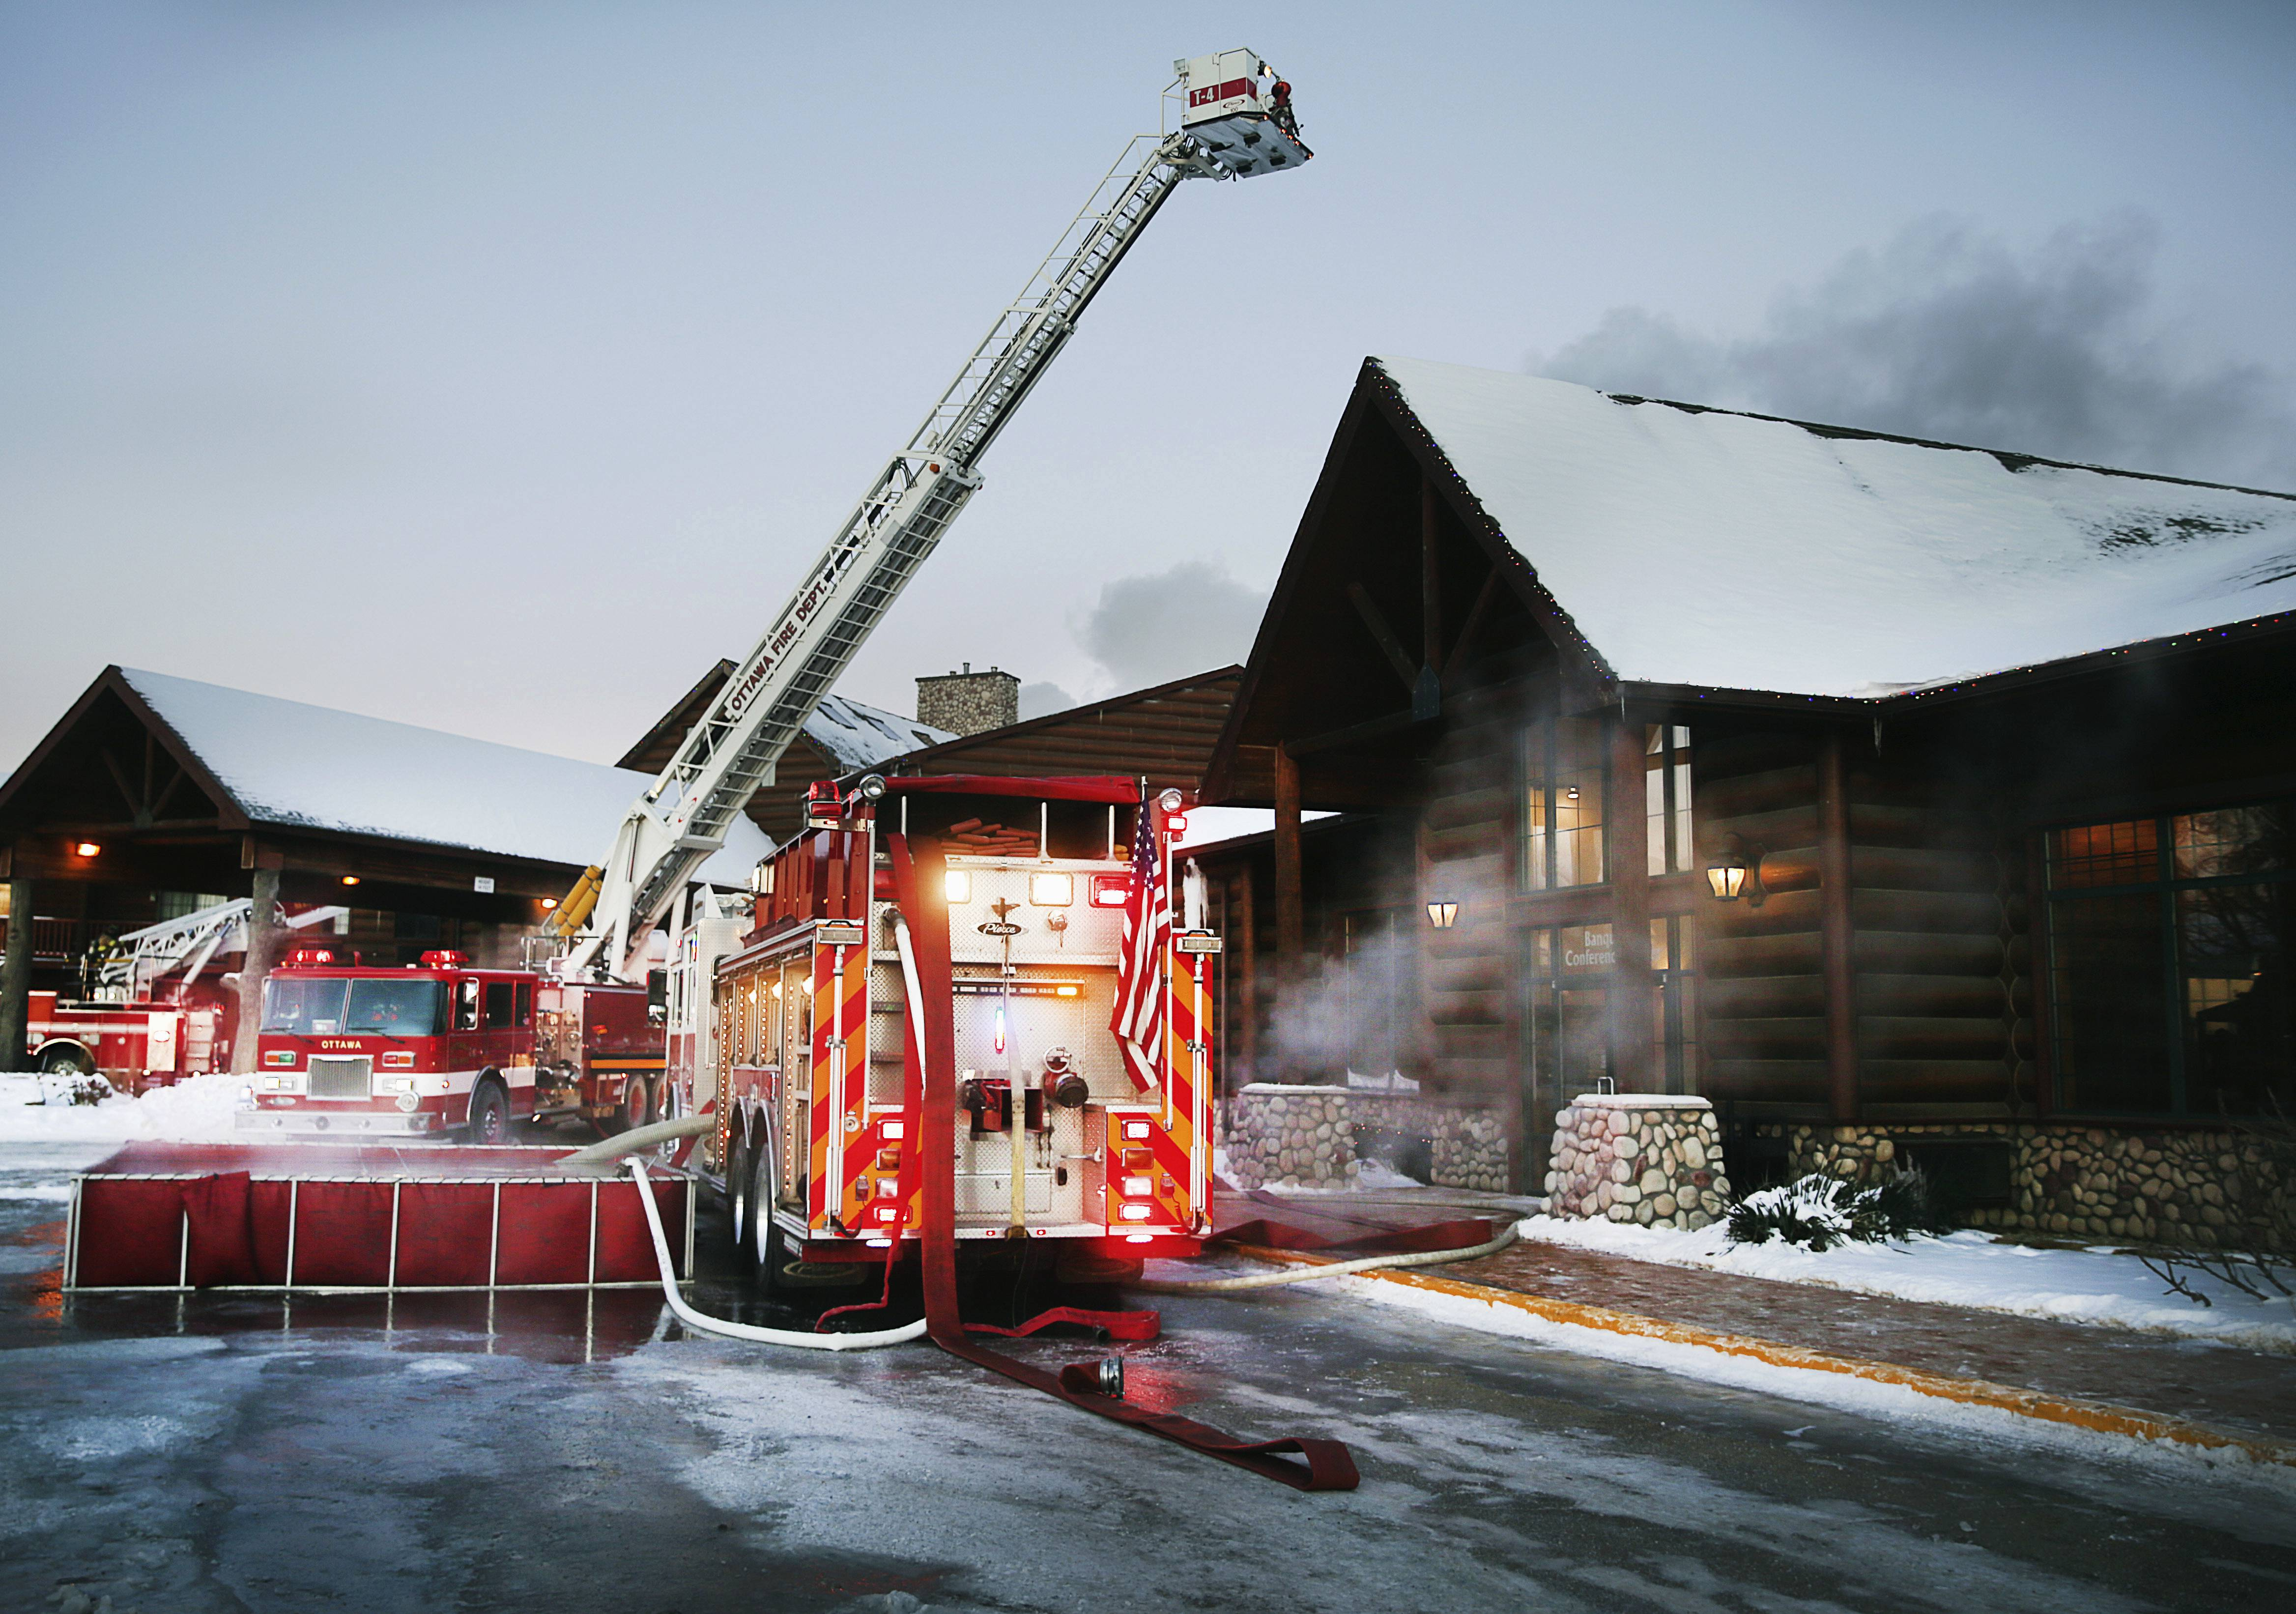 Firefighters battle a blaze at Grand Bear Lodge in Utica early Tuesday. Multiple fire departments responded to the fire that officials say was in the resort's main lodge and nearby pool. They had no information on injuries.